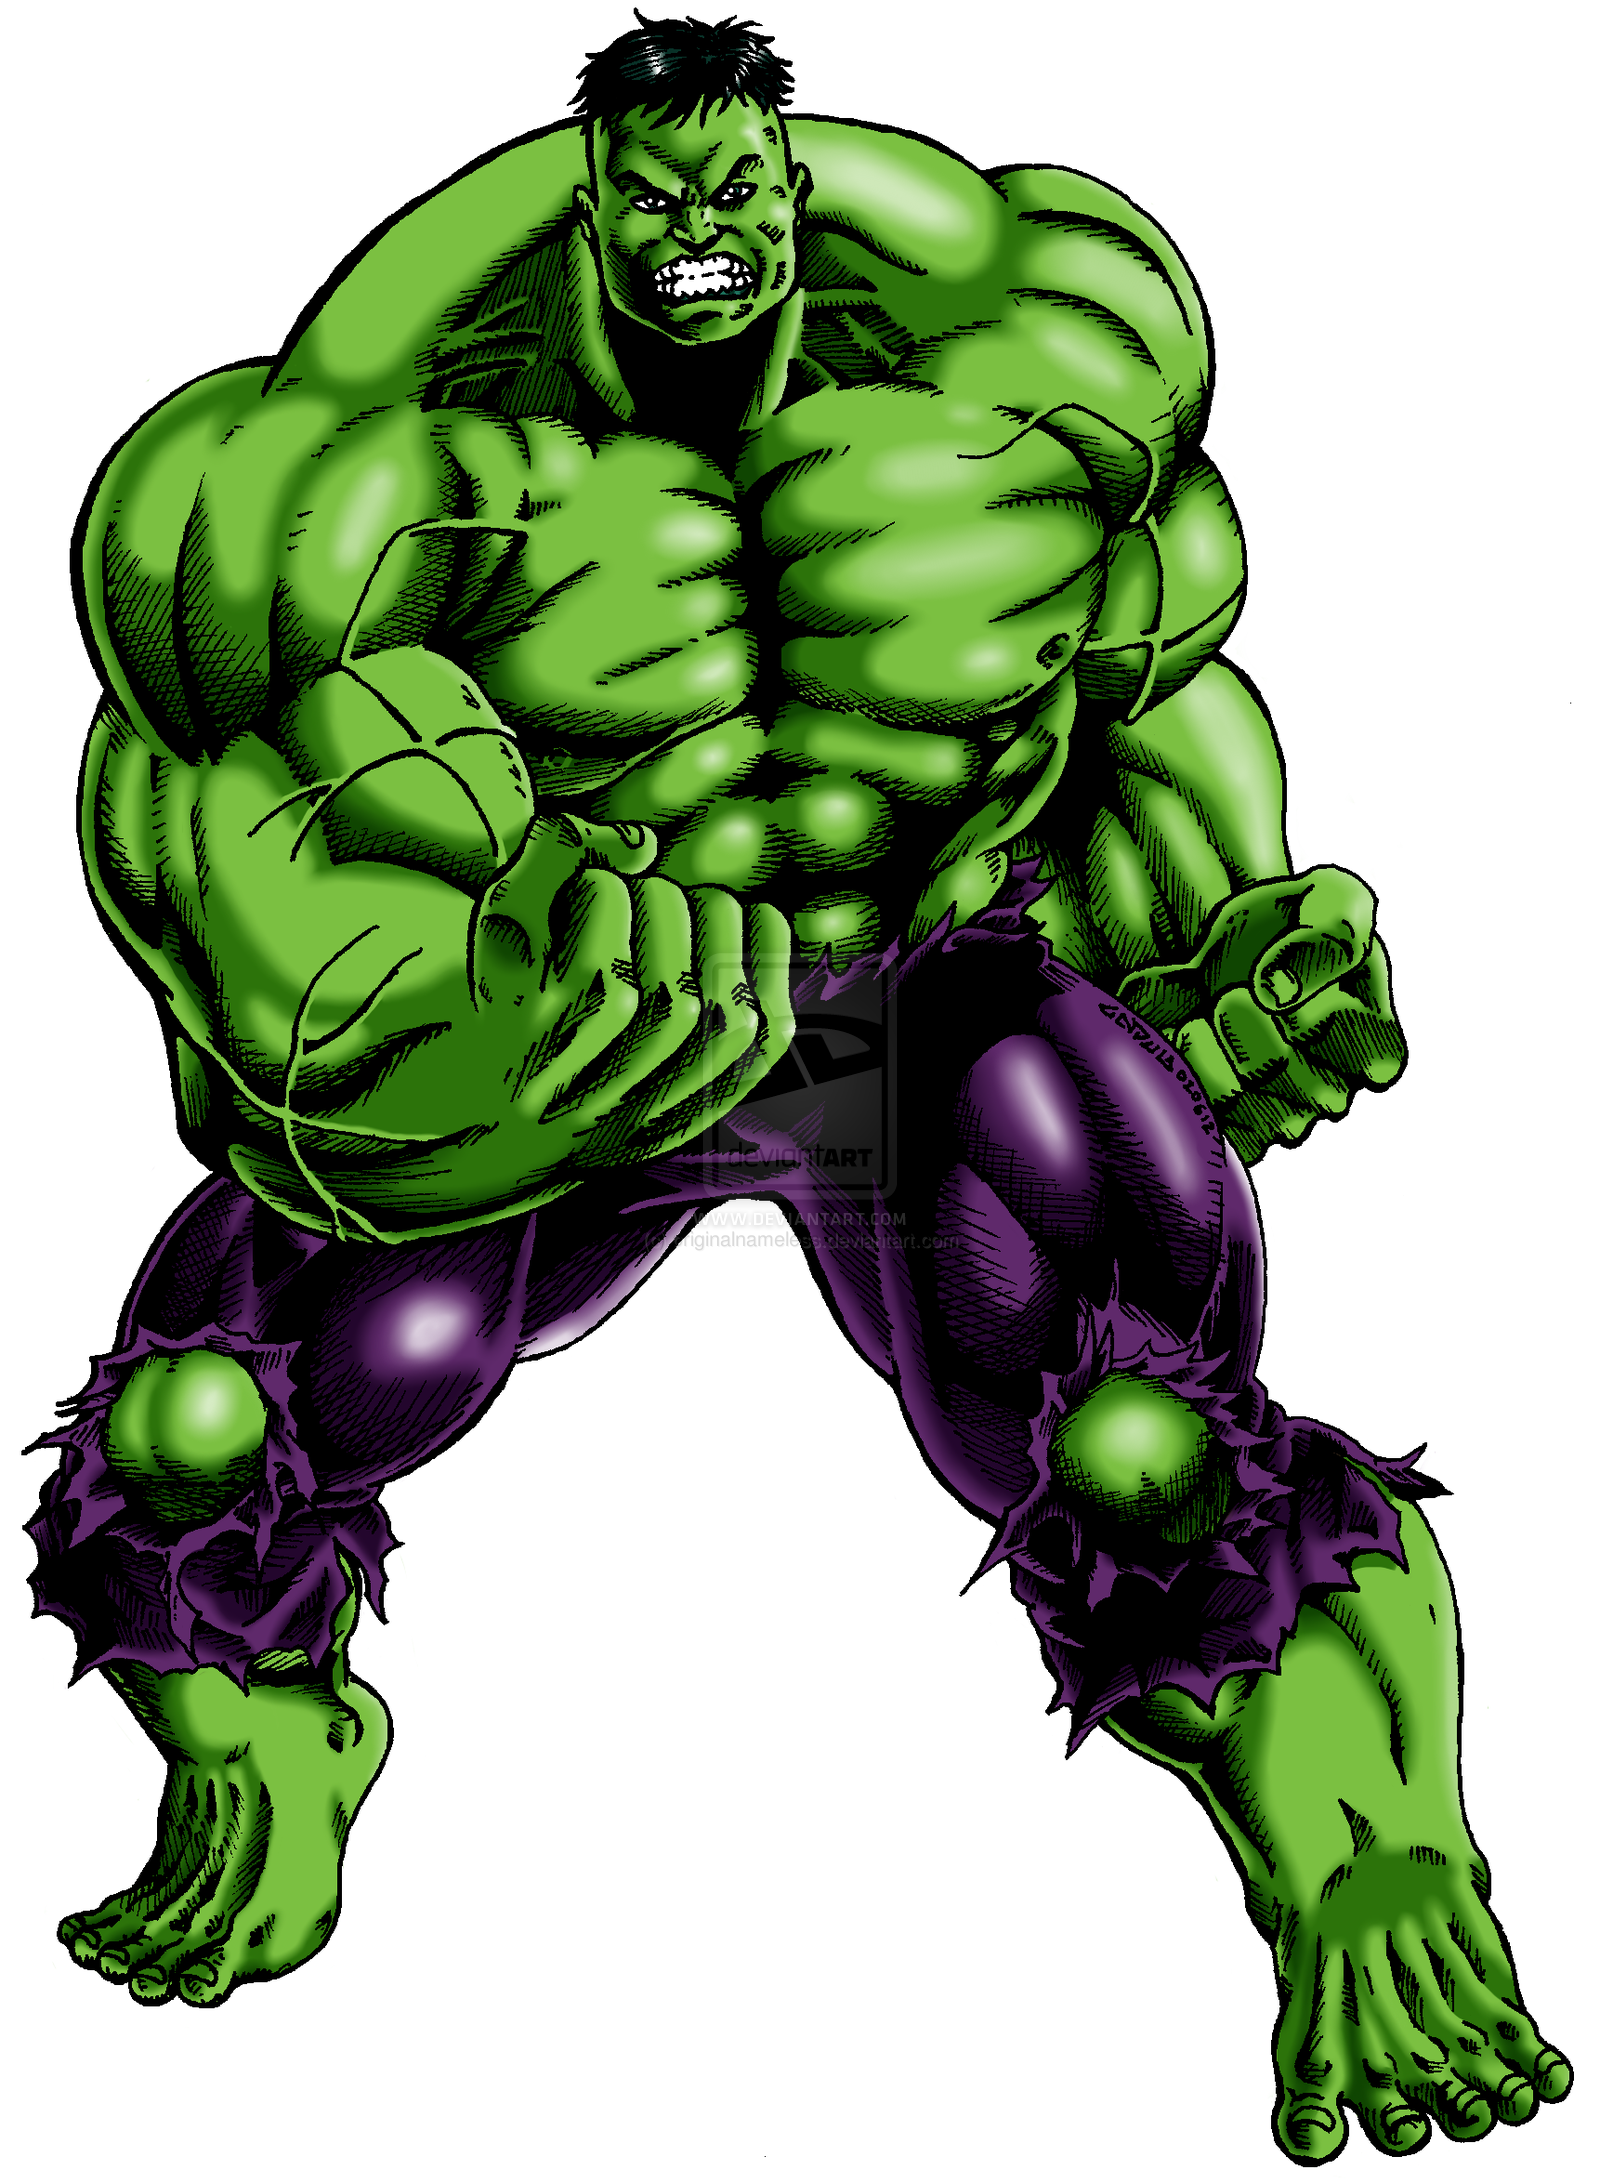 Incredible Hulk Cartoon Drawing Free Image Download Follow along with us, and don't worry about making your drawing look exactly like ours. incredible hulk cartoon drawing free